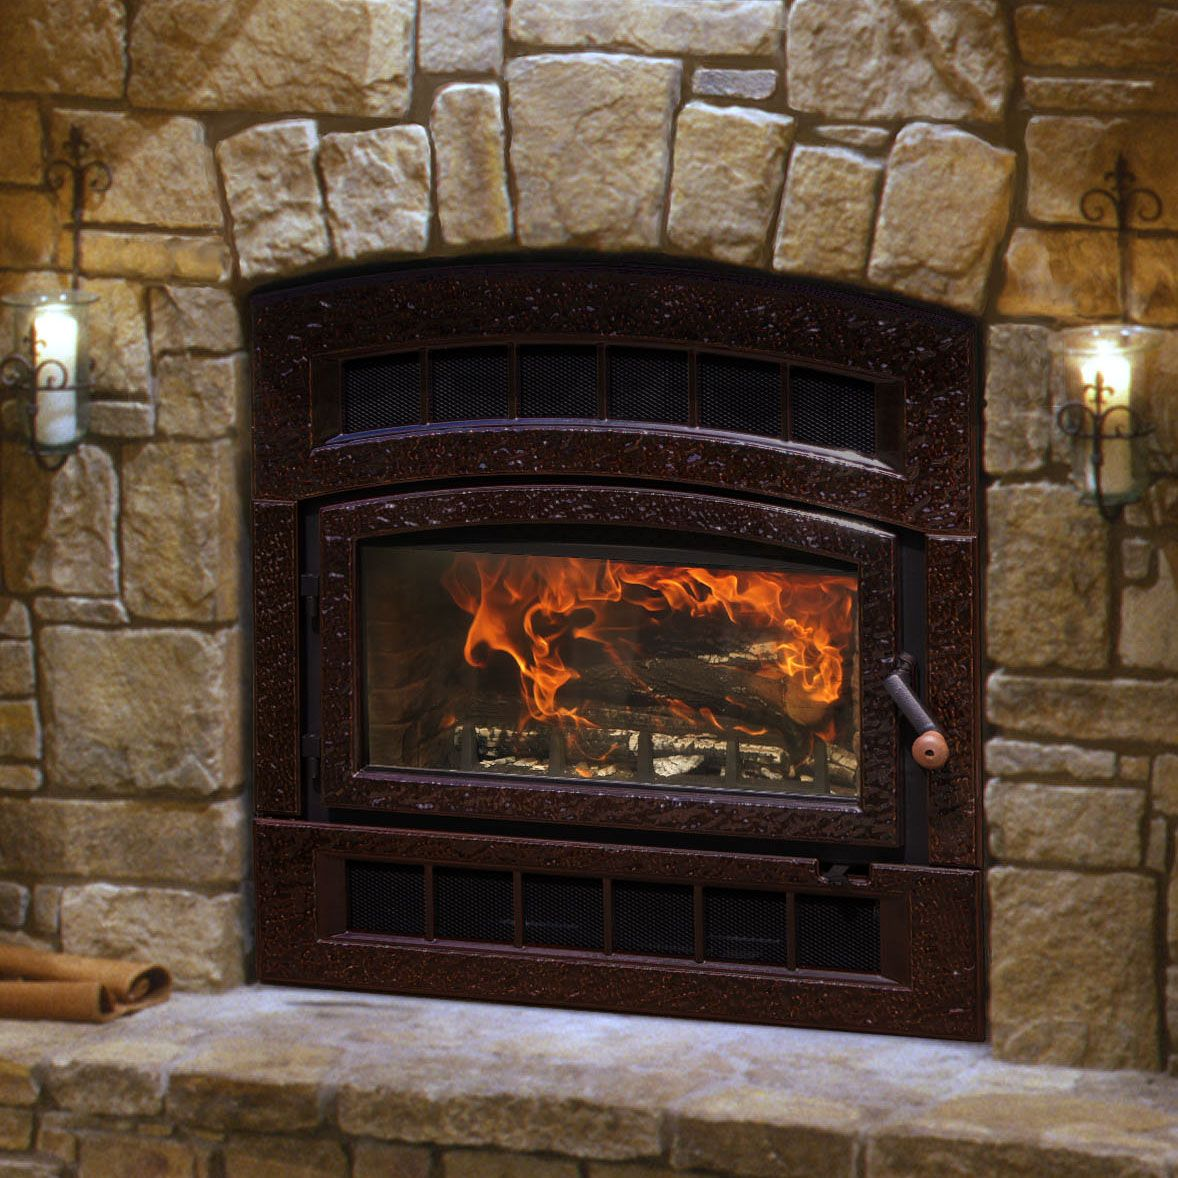 Zero Clearance Wood Burning Fireplace Wood Stoves Zero Clearance Fireplaces Wood Burning Stoves Wood Fireplace Wood Burning Fireplace Wood Stove